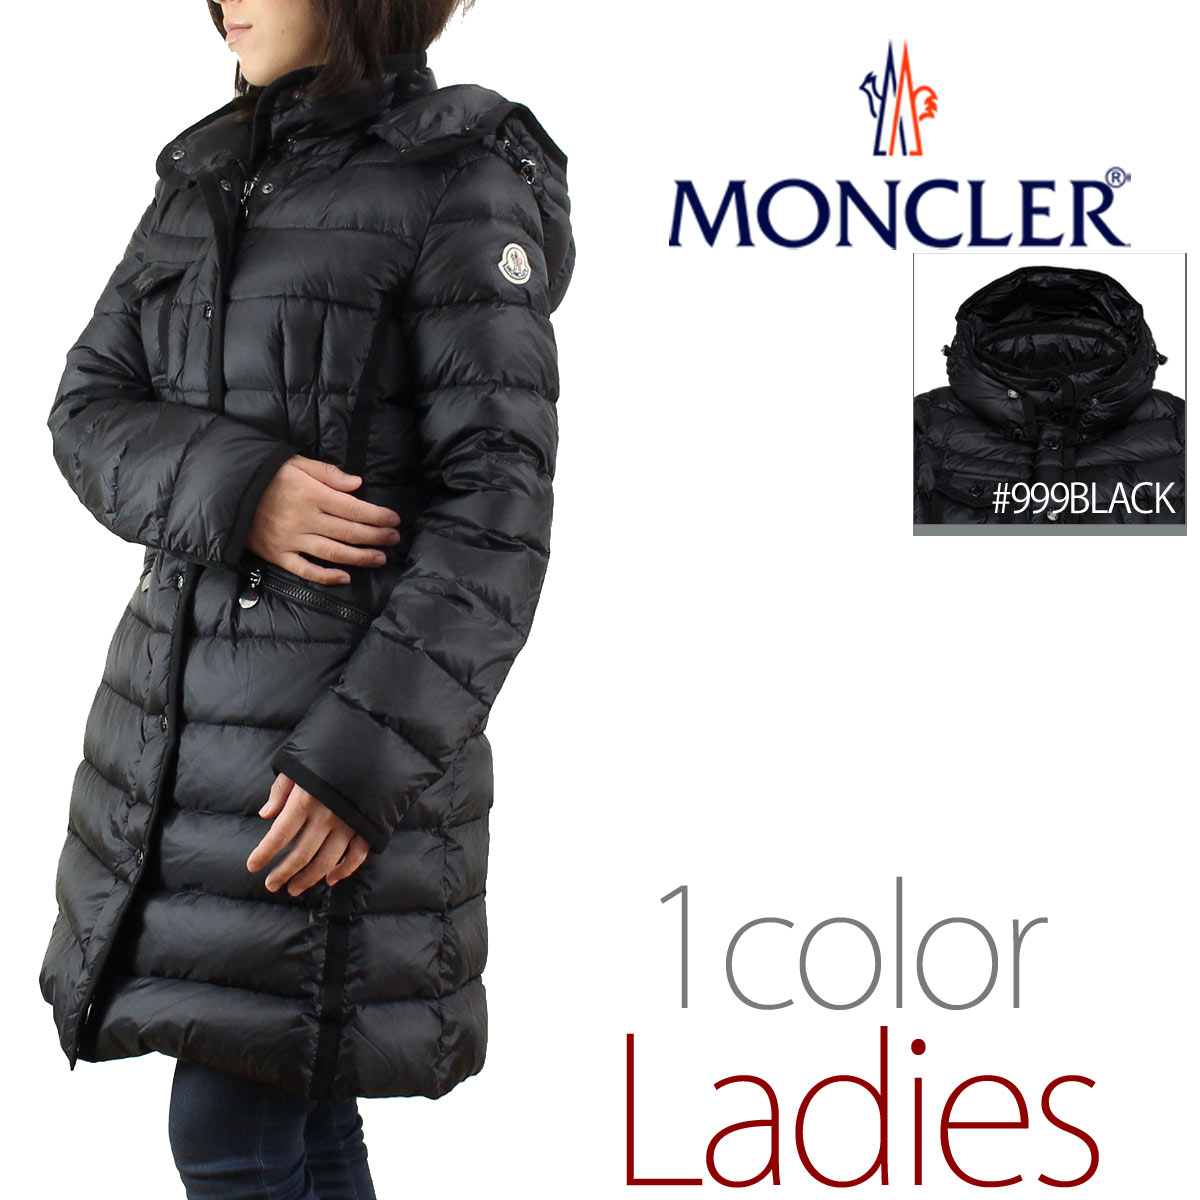 MONCLER (MONCLER) Armin [HERMINE] women's down coat HERMINE 4933905 15 - 53048 - 999 black( taxfree/send by EMS/authentic/A brand new item )